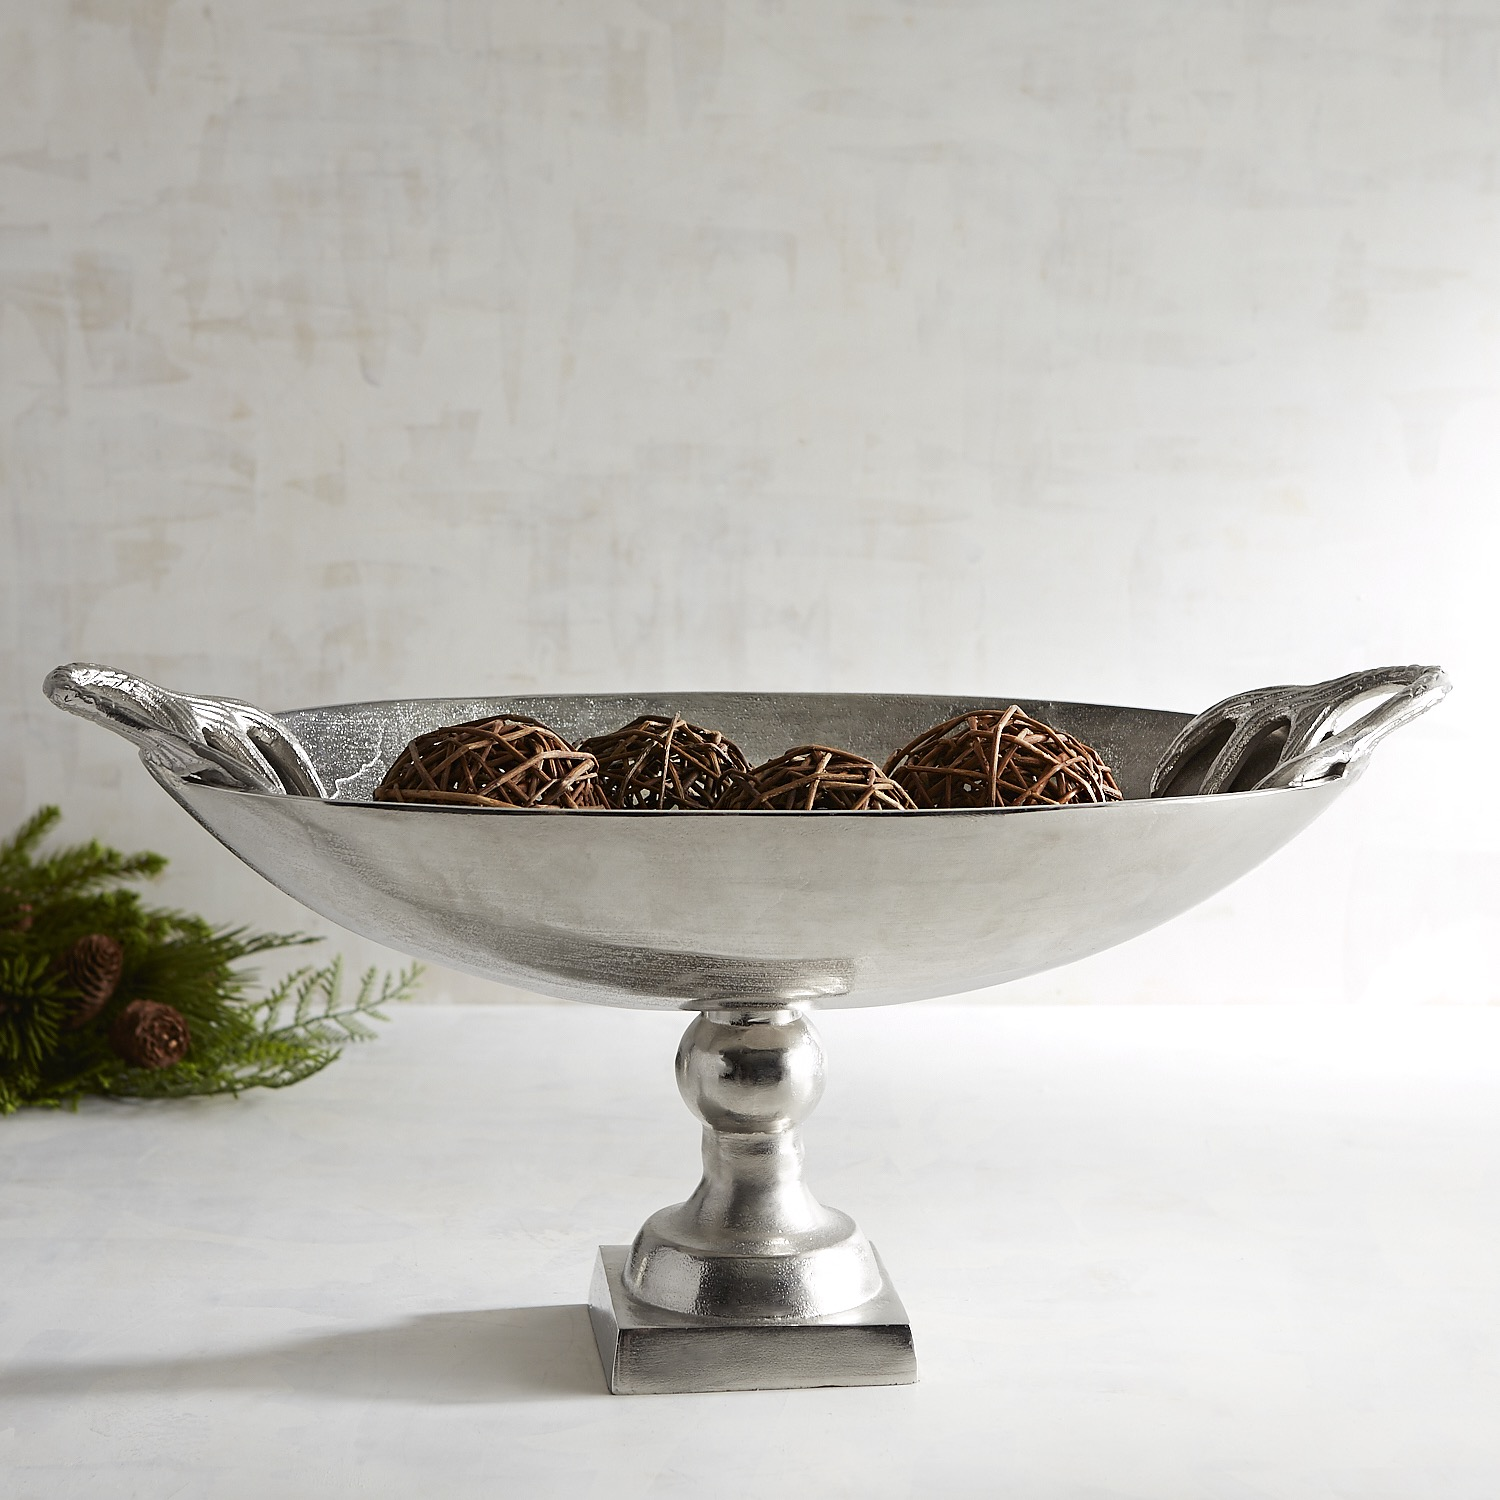 Decorative Oval Bowl with Deer Head Handles